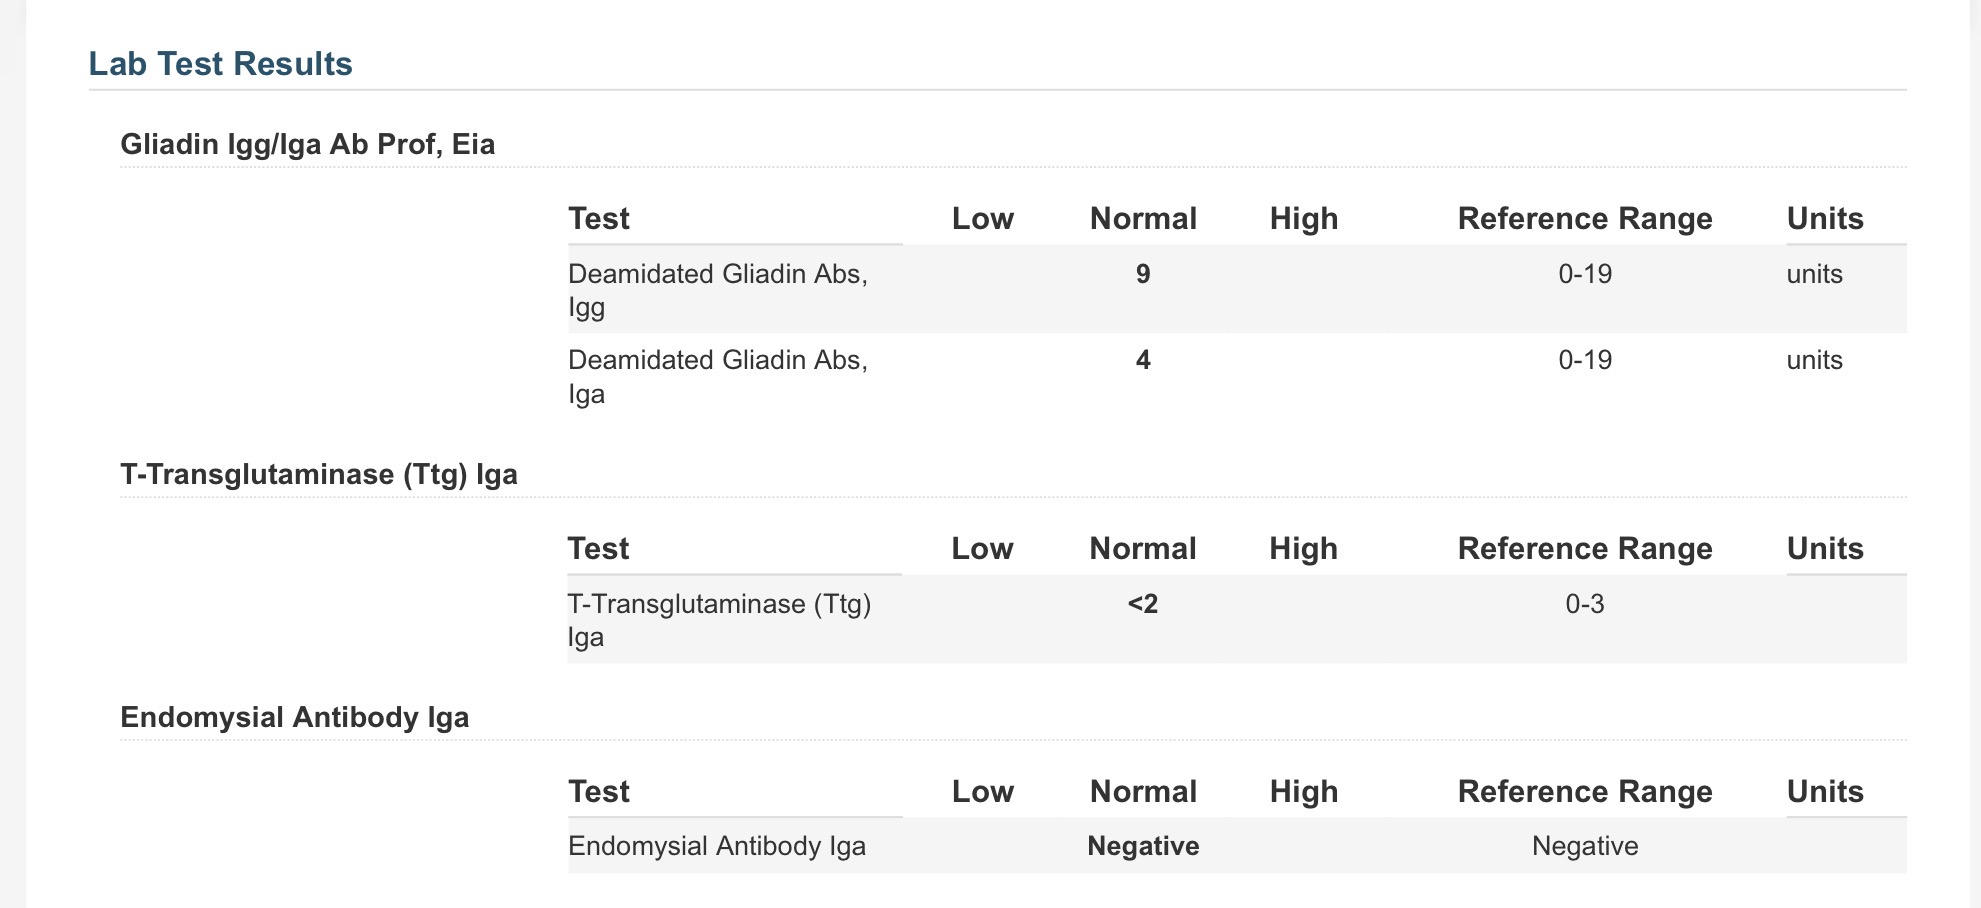 Normal Celiac Blood Test Results After One Year